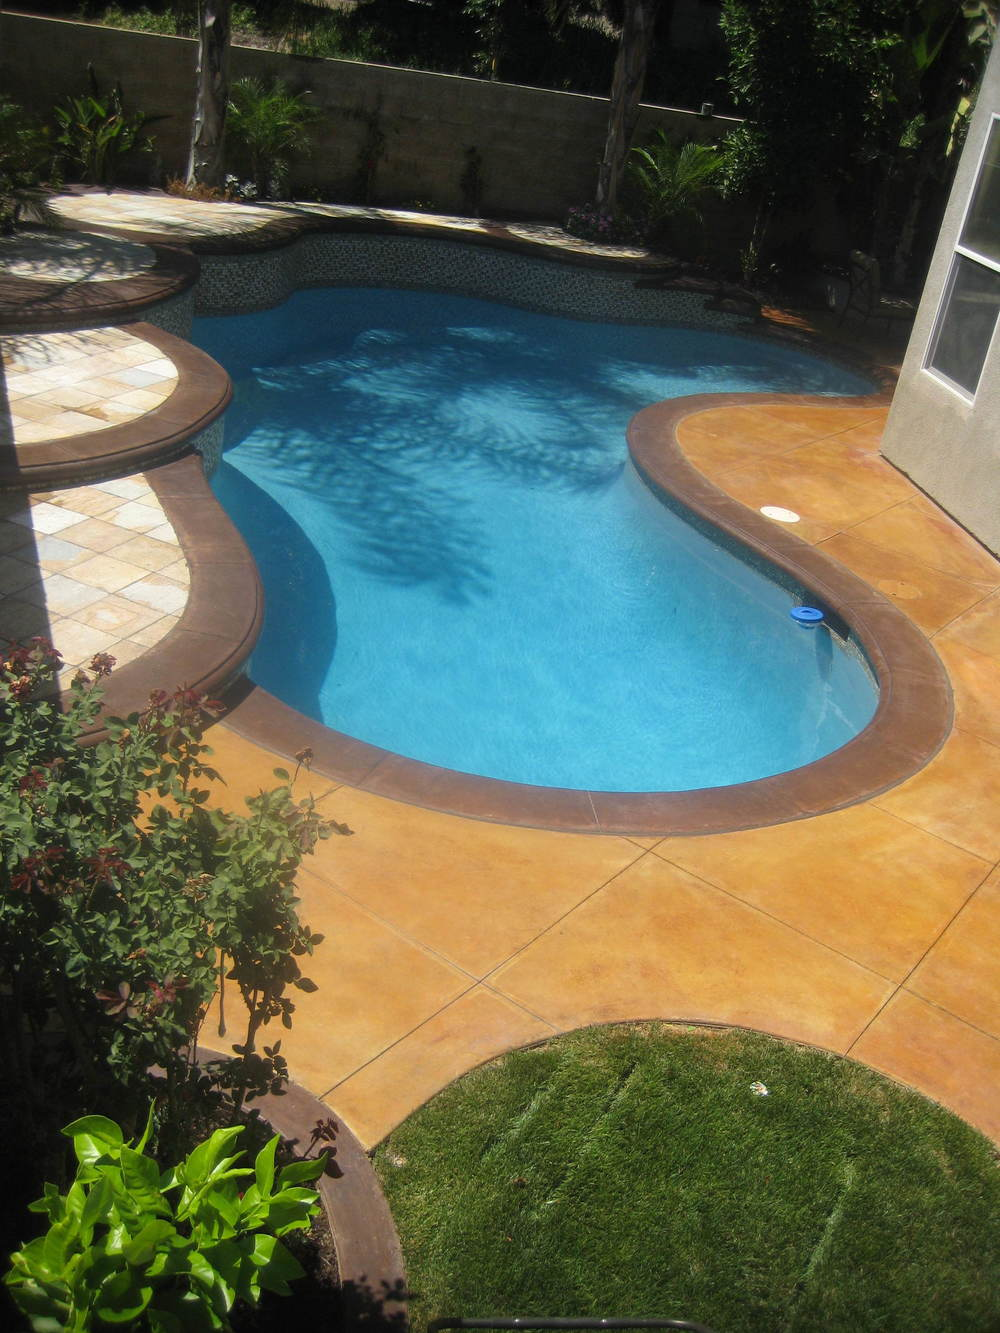 Corona, Ca -Pool + Deck